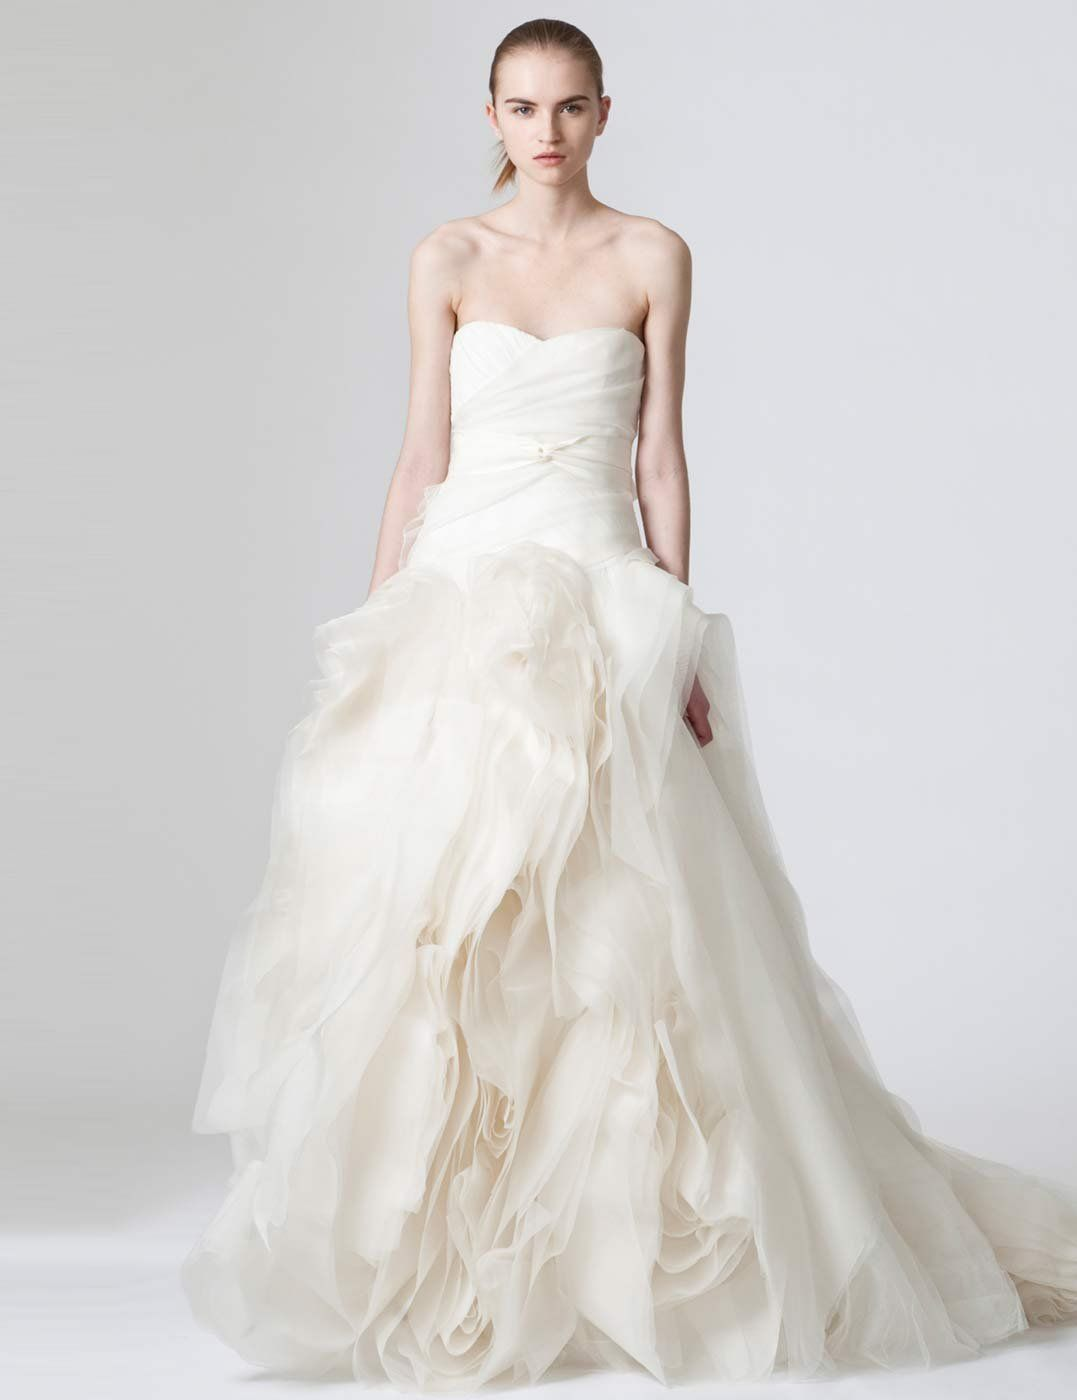 Fancy Vera Wang Find a cut price designer wedding gown with ELLE us guide to the